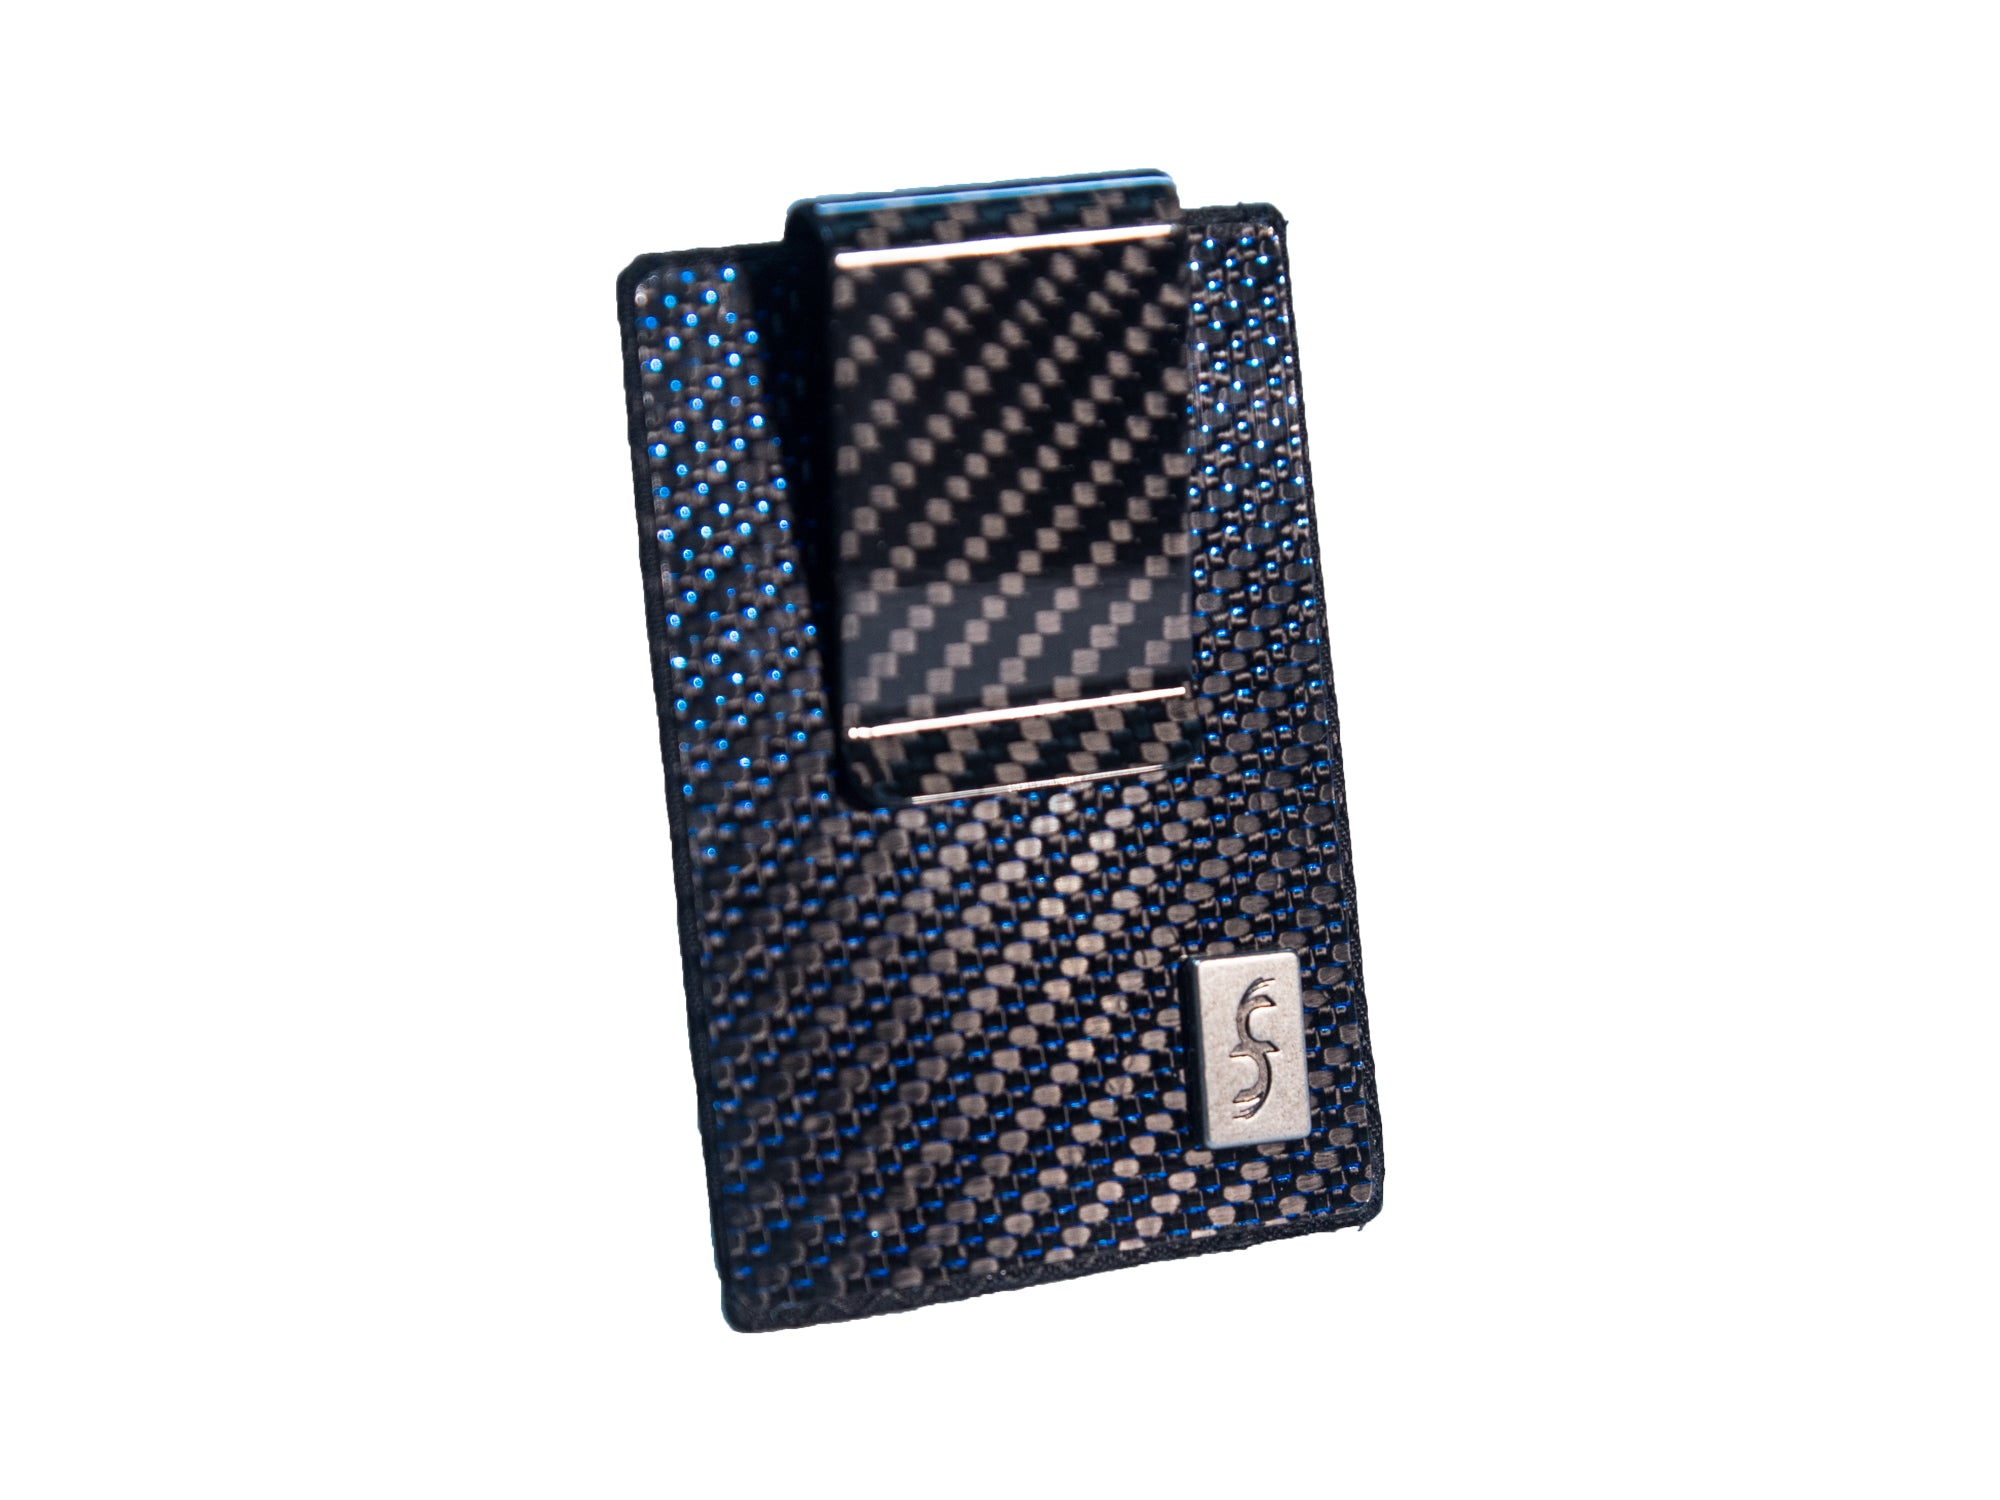 Reflections FIT - Money Clip Carbon Fiber Wallet